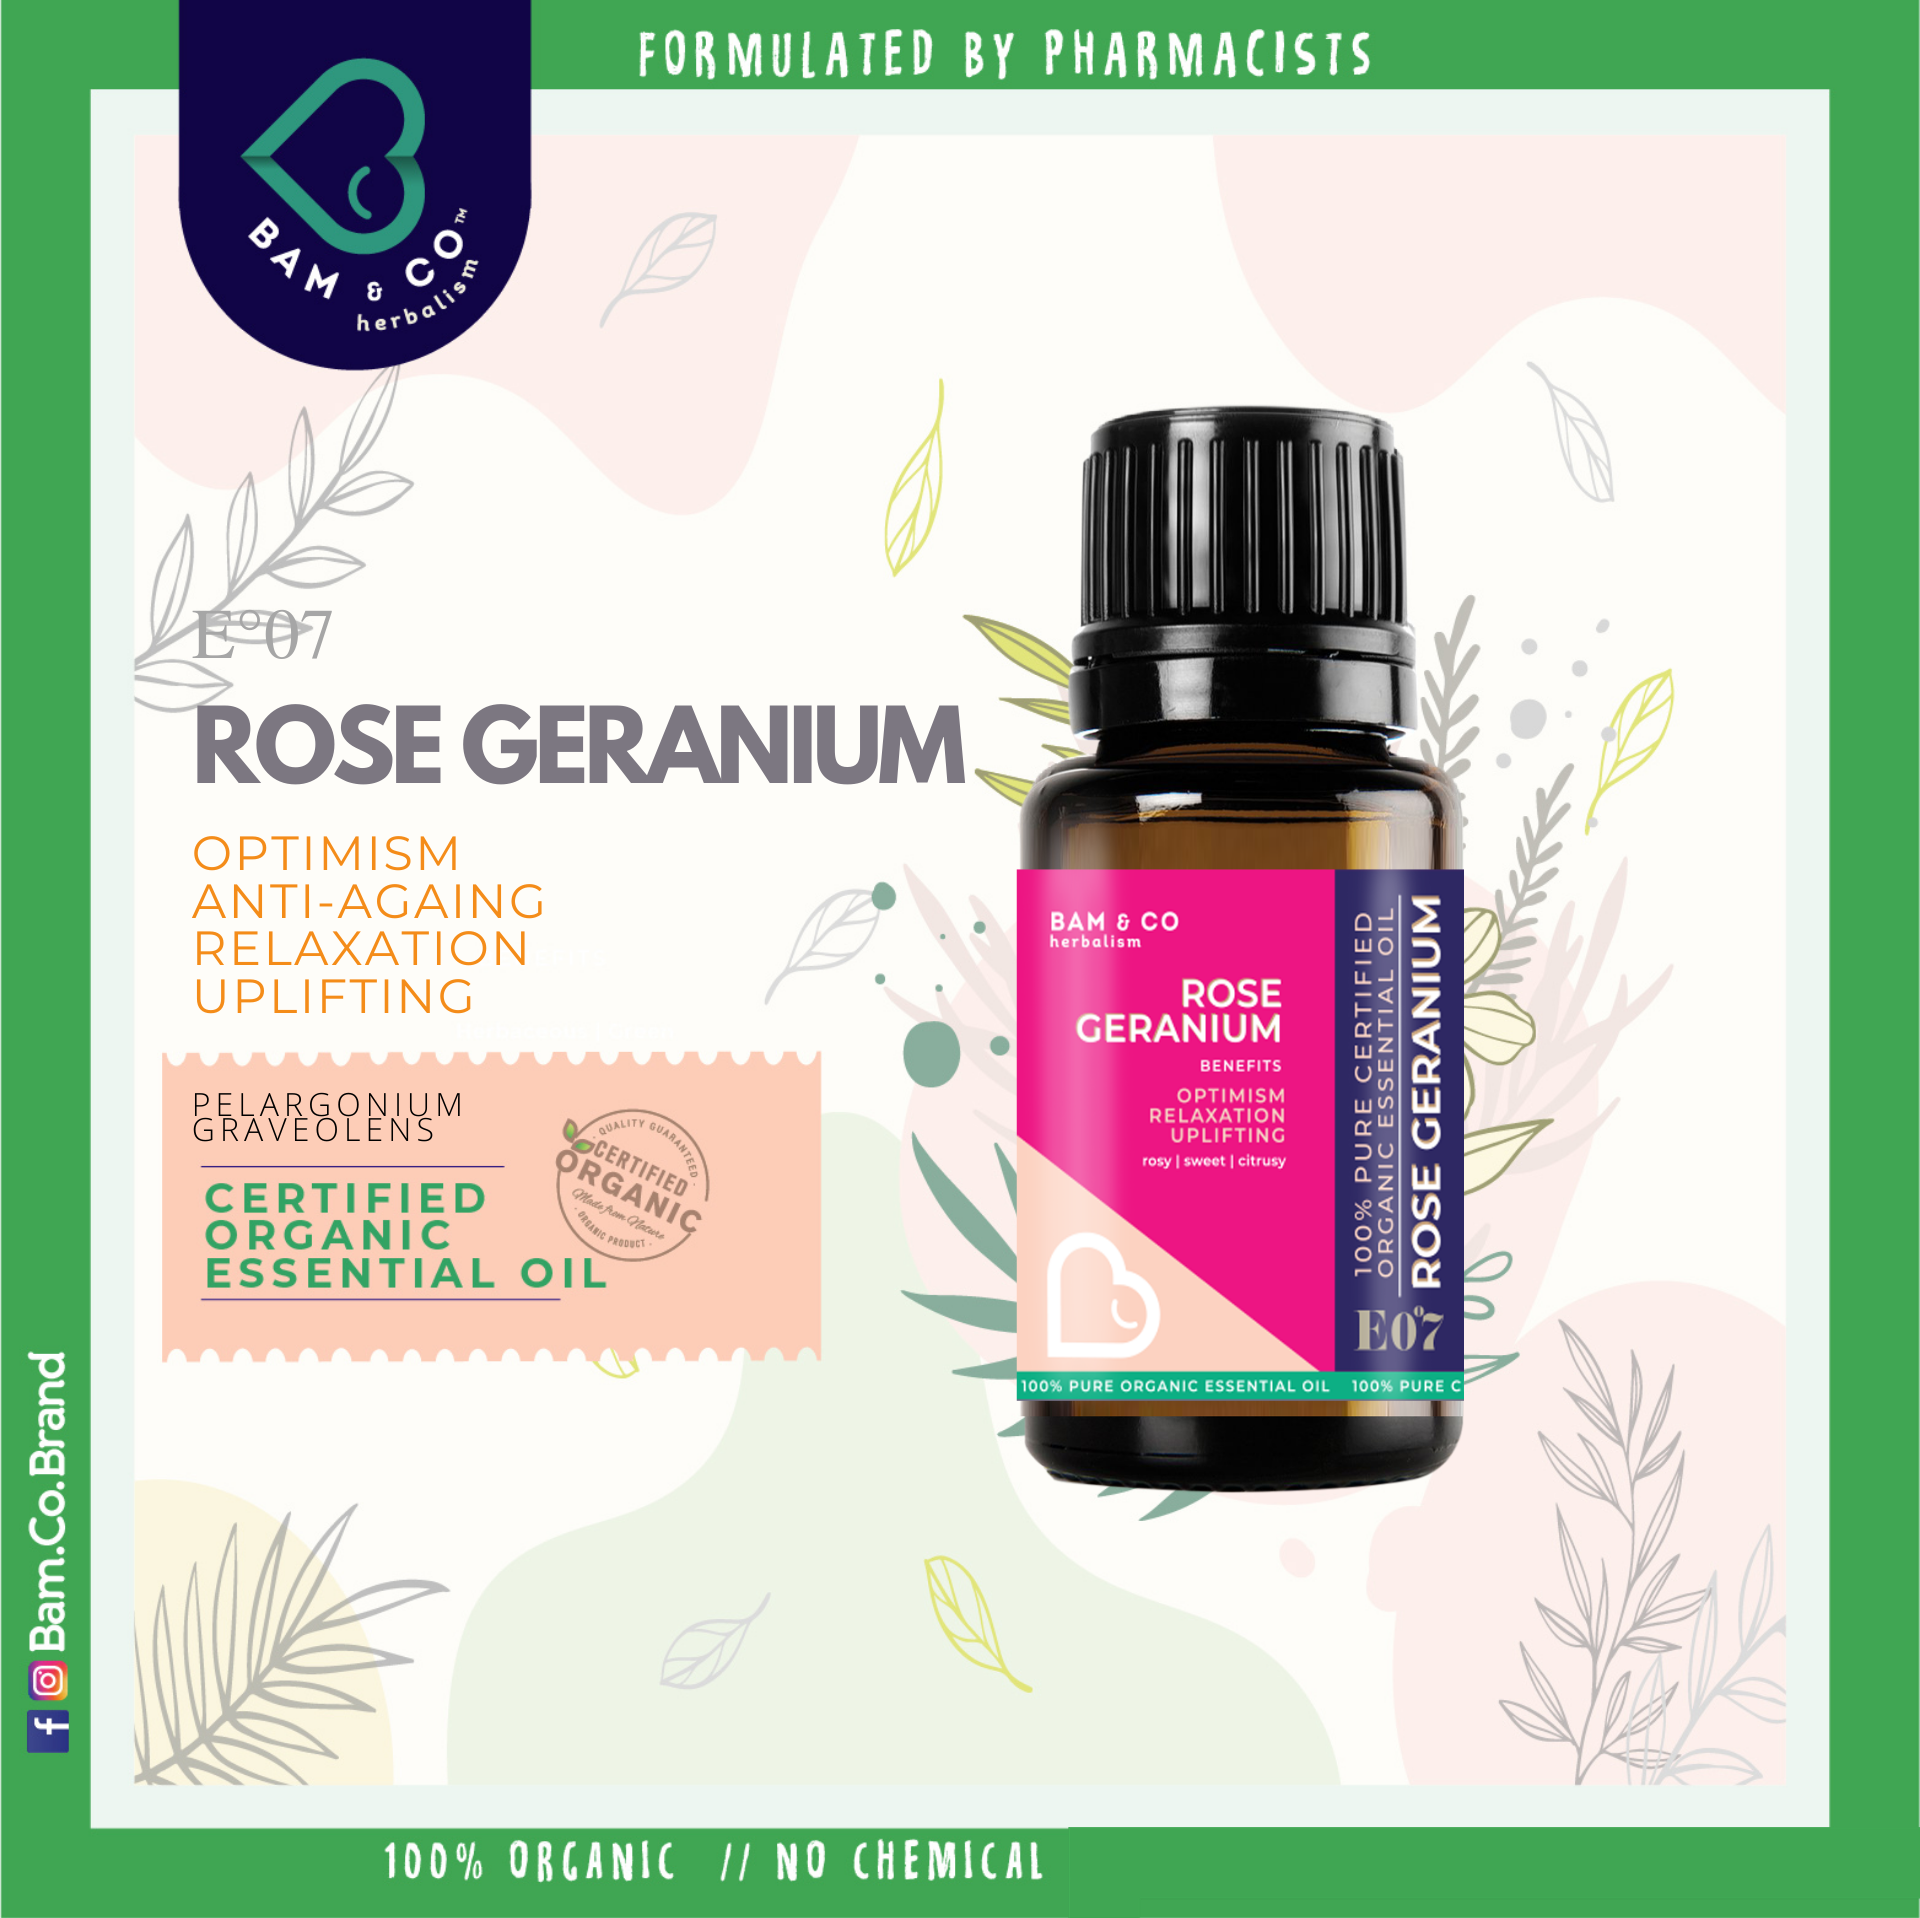 BAM & CO. ROSE GERANIUM CERTIFIED PURE ORGANIC ESSENTIAL OIL PERFECT FOR HUMIDIFIER 5ML 10ML